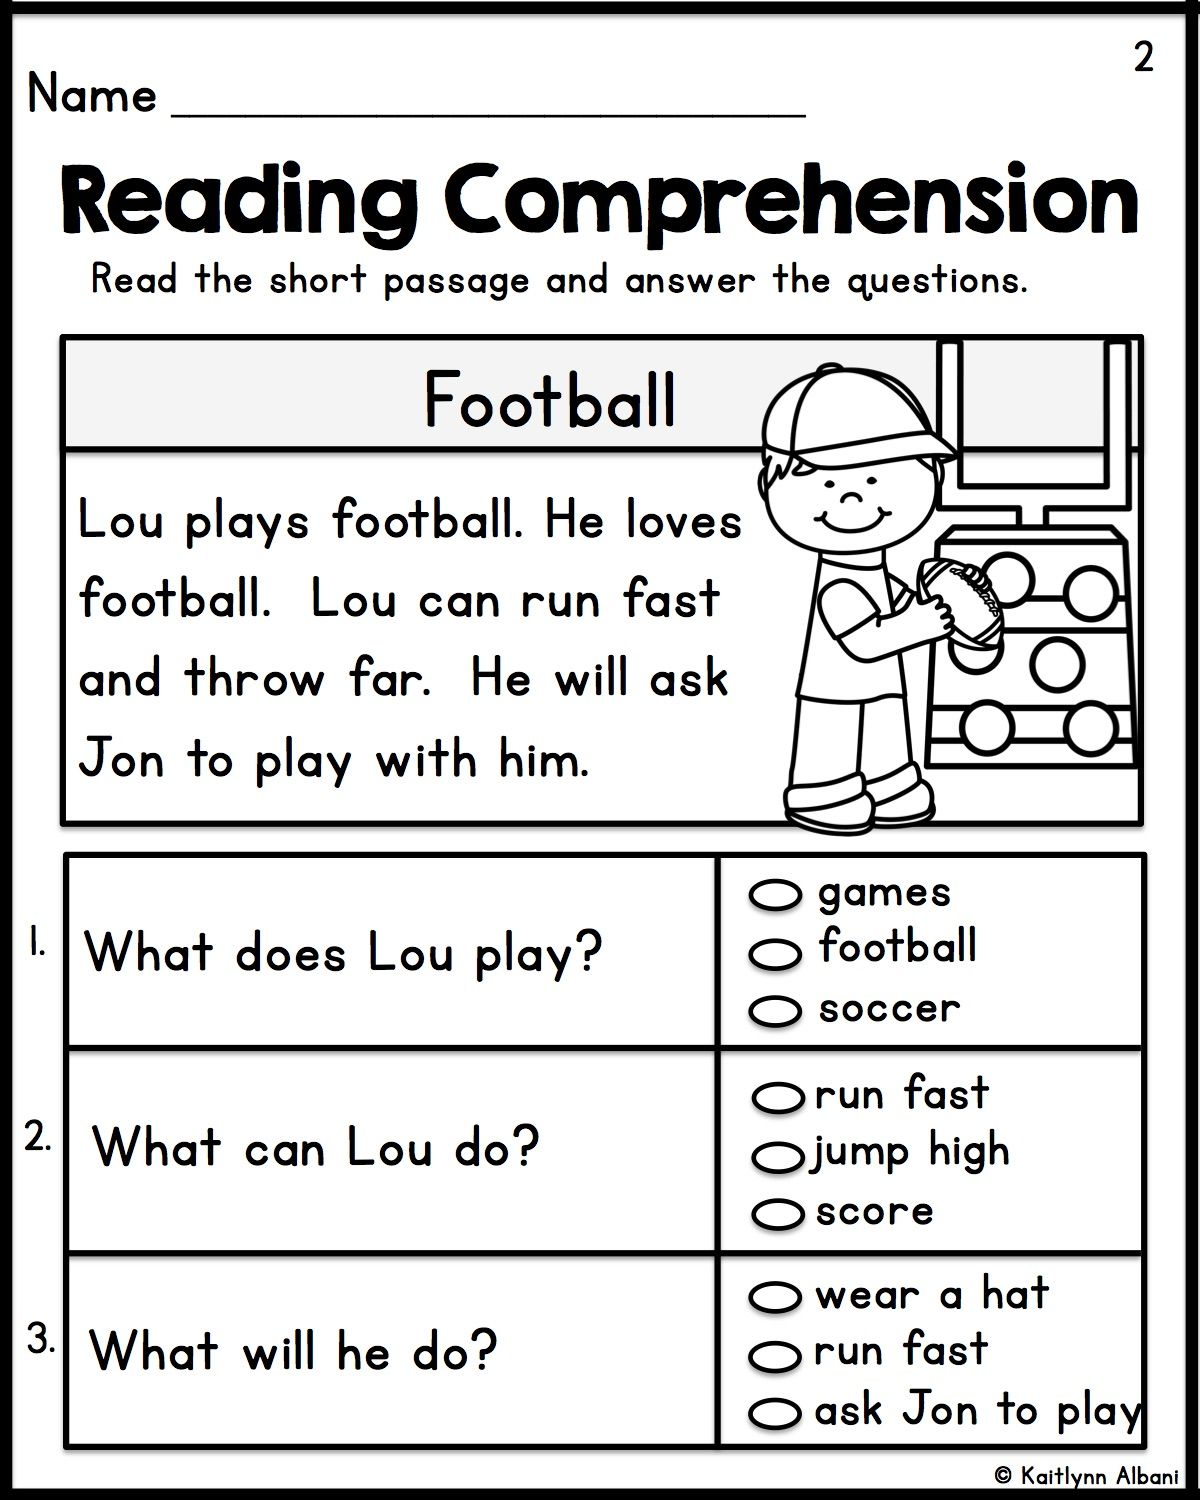 - Kindergarten Reading Comprehension Passages - Set 1 Reading